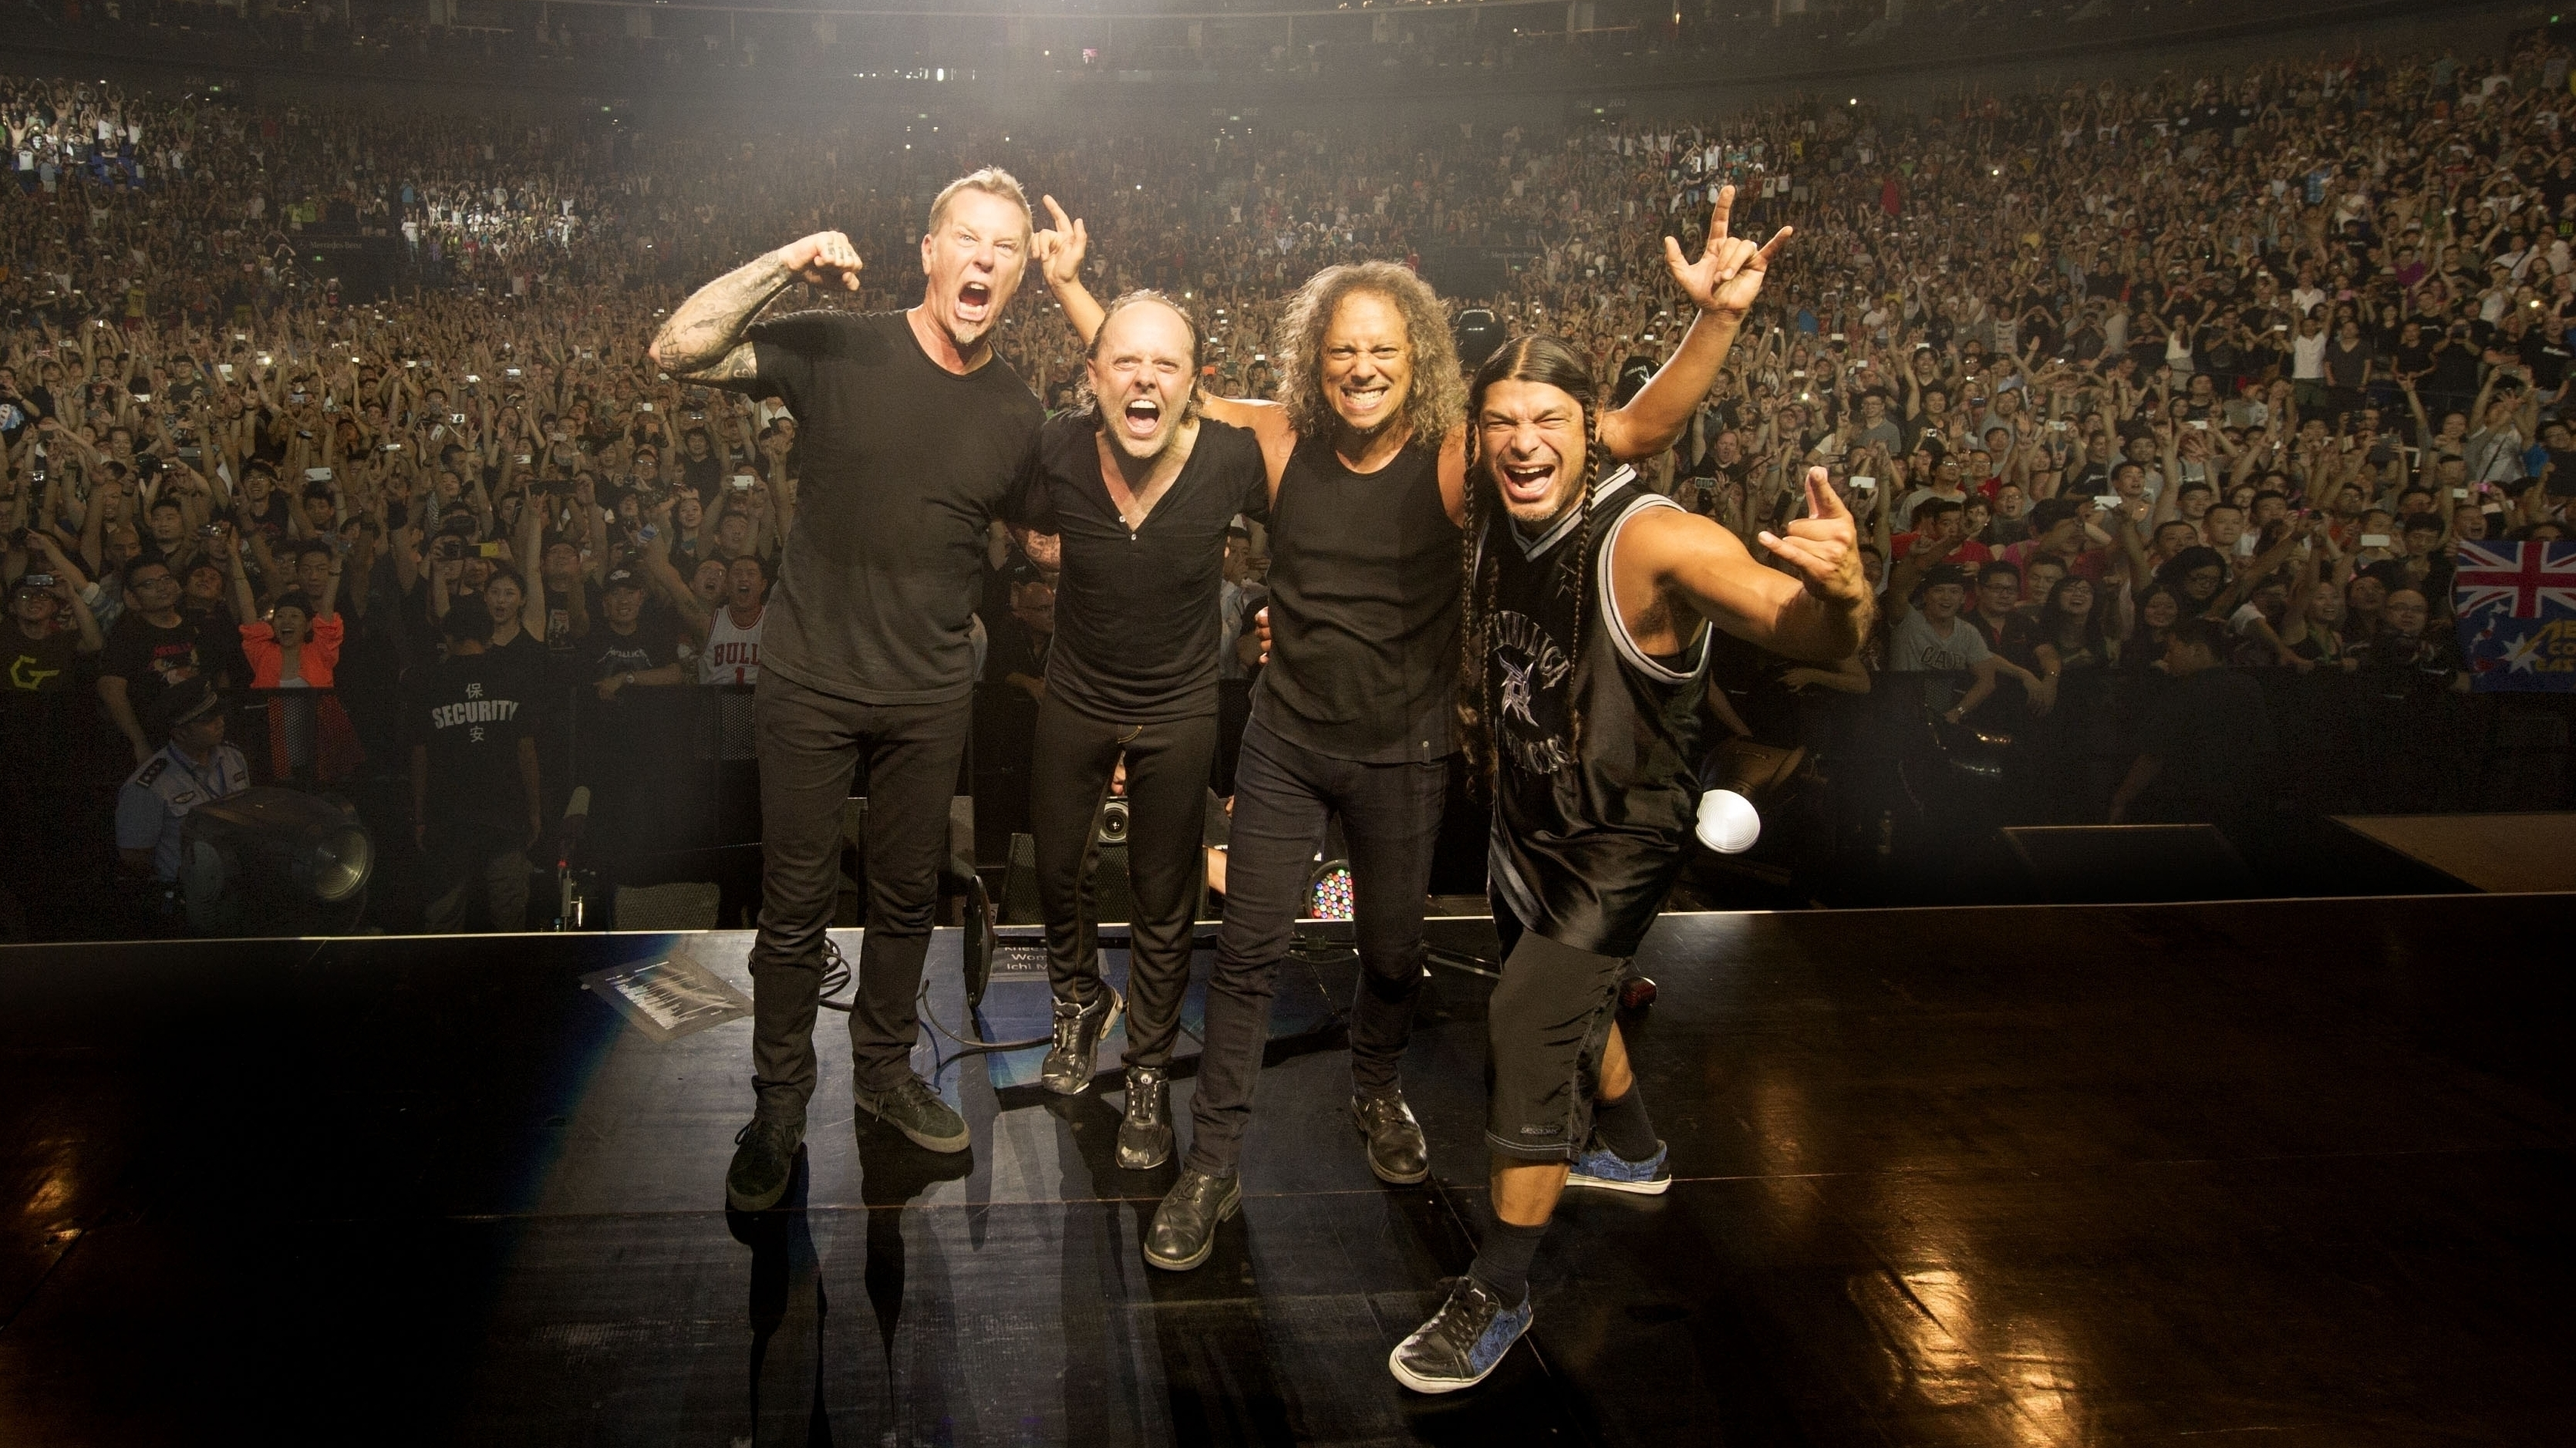 an american headliner in china metallica 39 s shanghai debut ncpr news. Black Bedroom Furniture Sets. Home Design Ideas